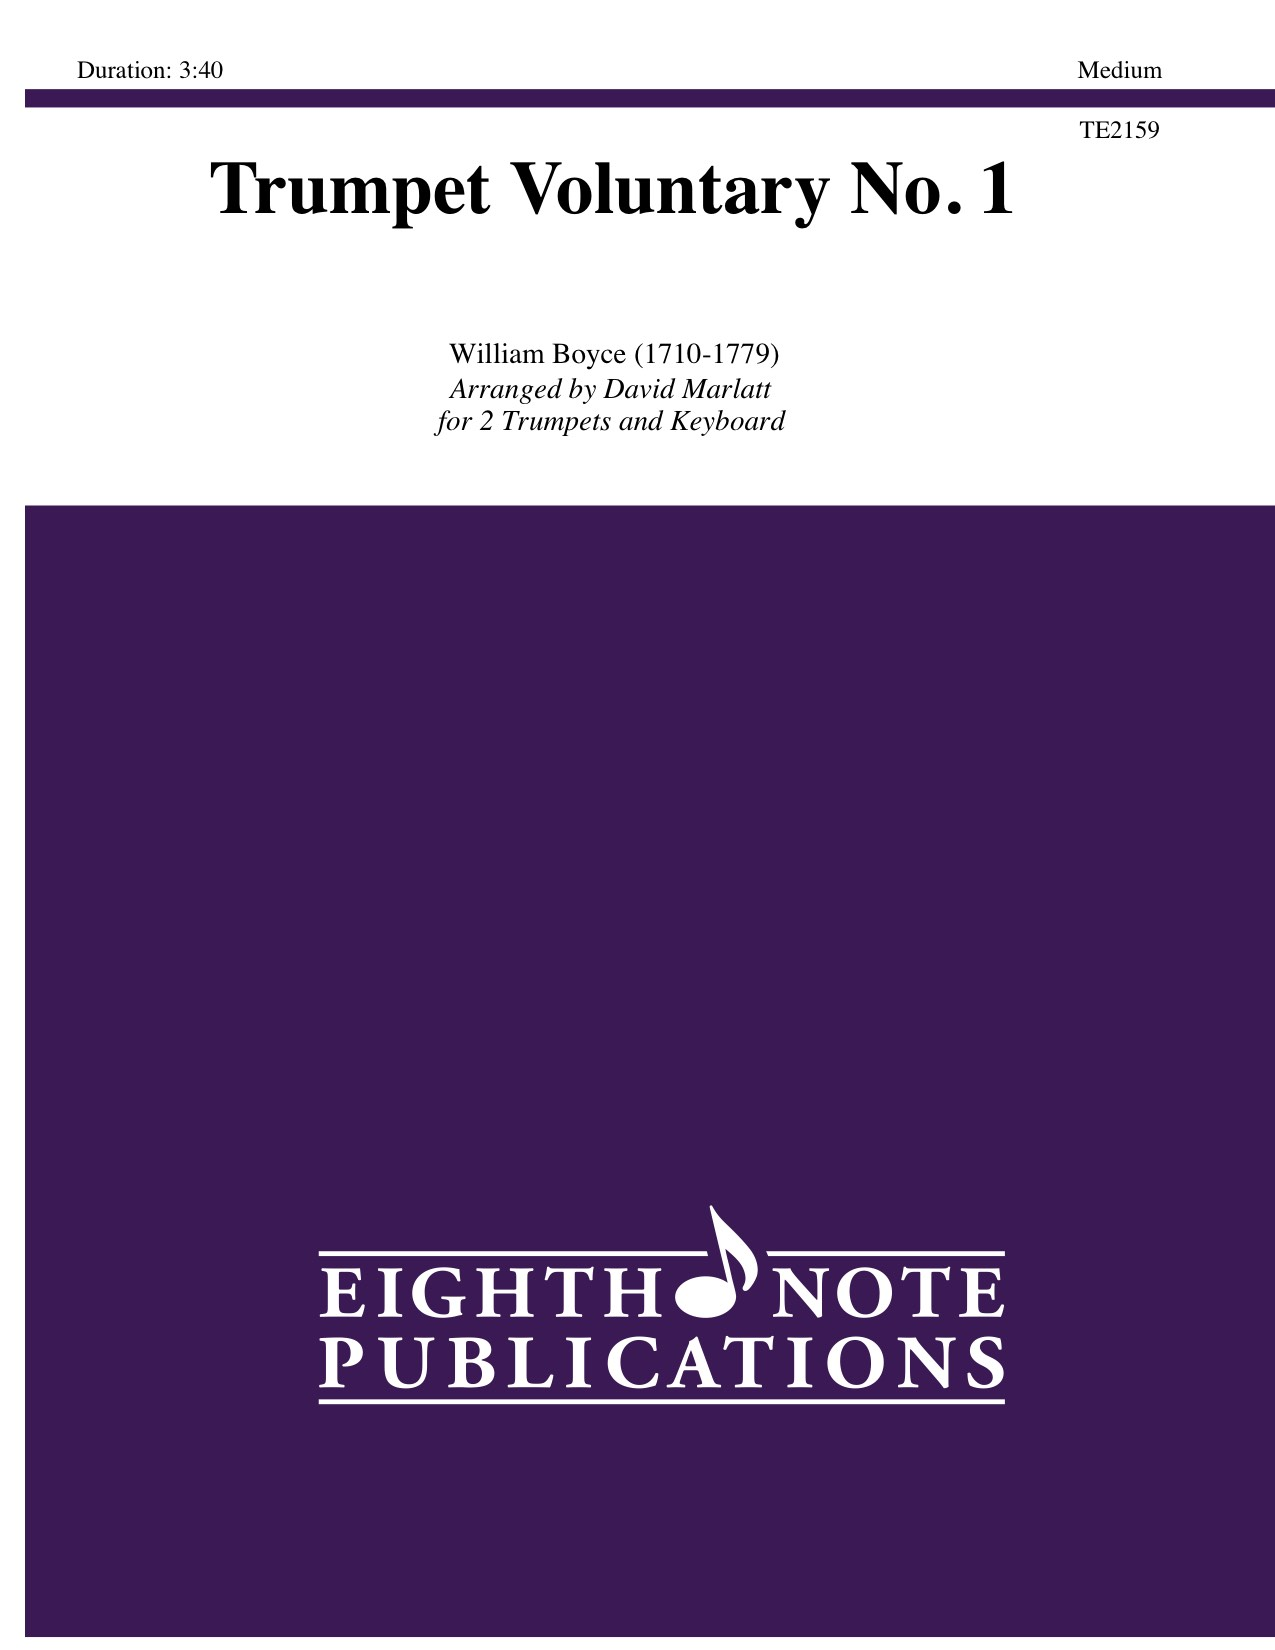 Trumpet Voluntary No. 1  - William Boyce